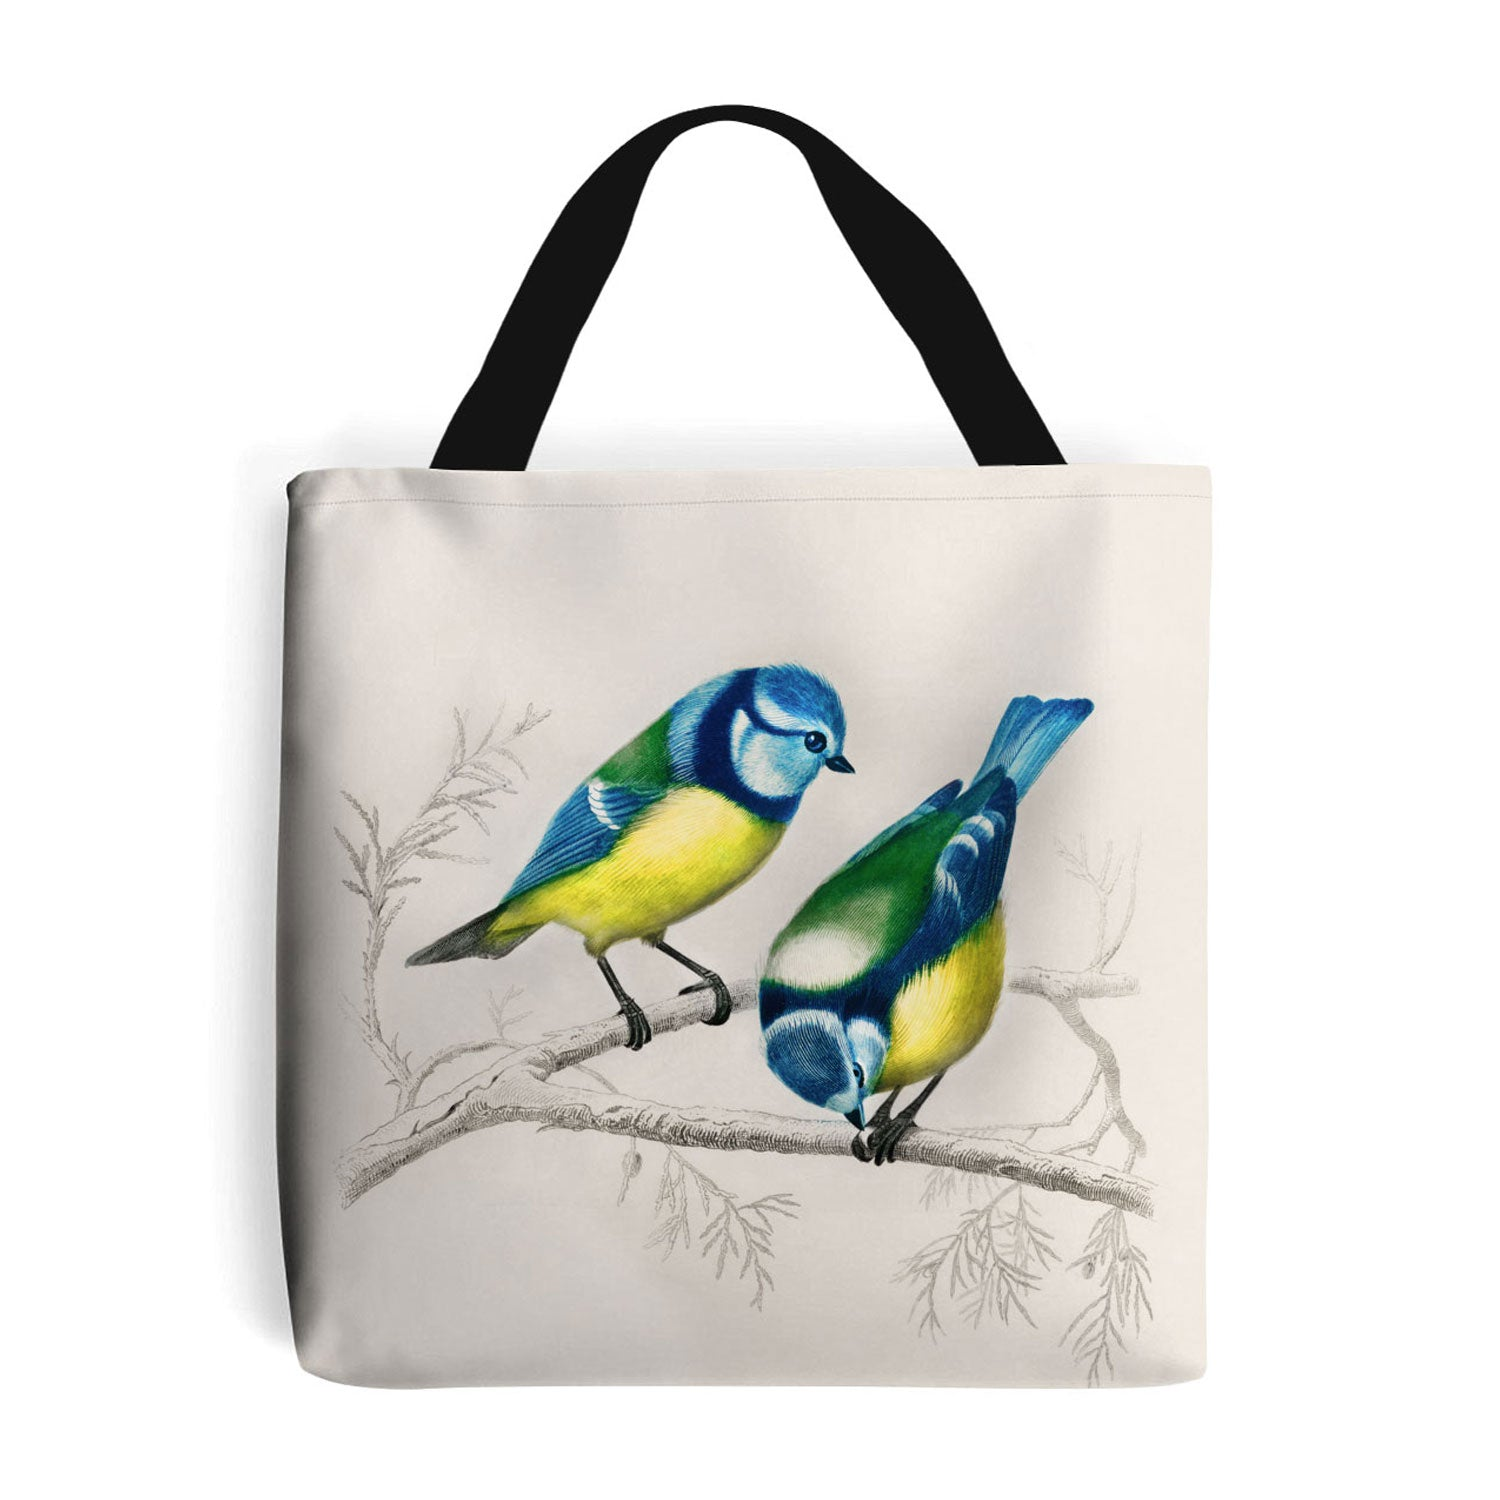 shopping bag with blue tit birds design